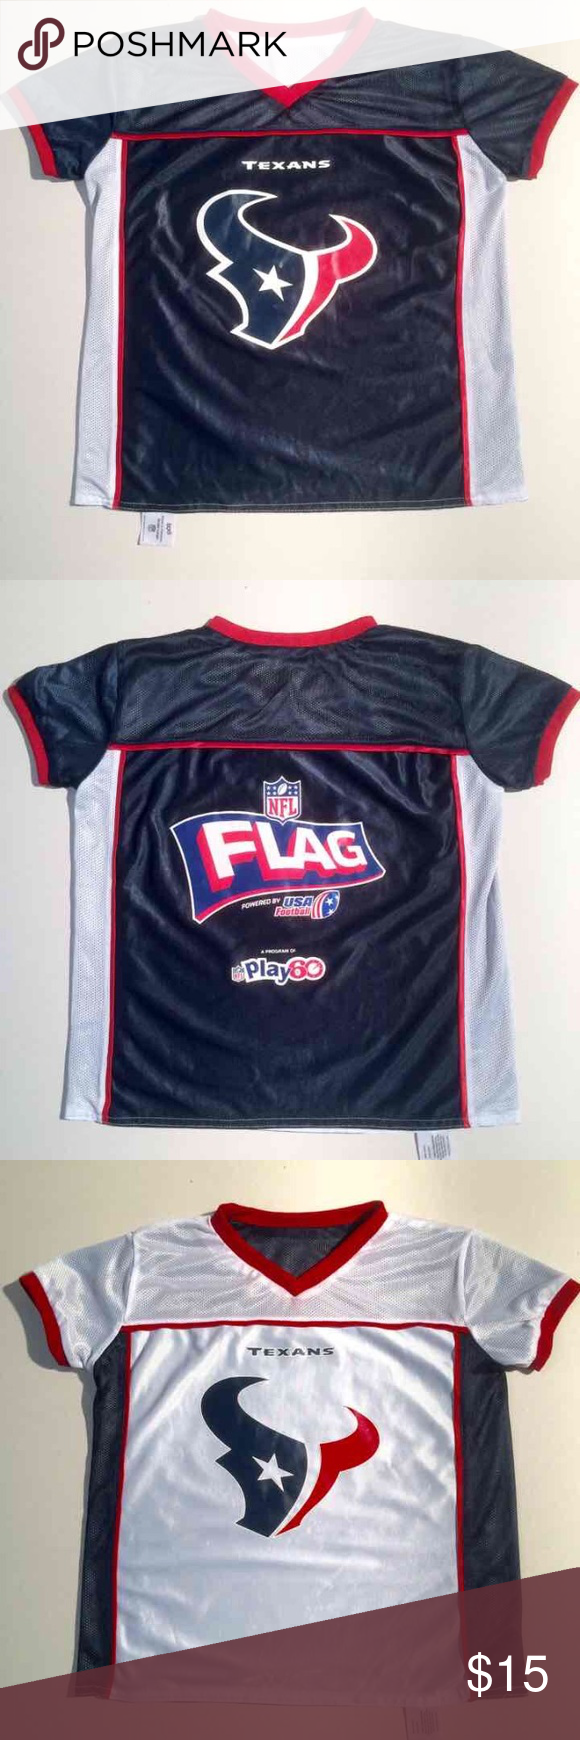 Houston Texans NFL Youth Reversible Jersey Houston Texans Youth size Large  NFL Flag powered by USA Football Play 60 Reversible - Navy   White Great  for home ... 7881e7ea4